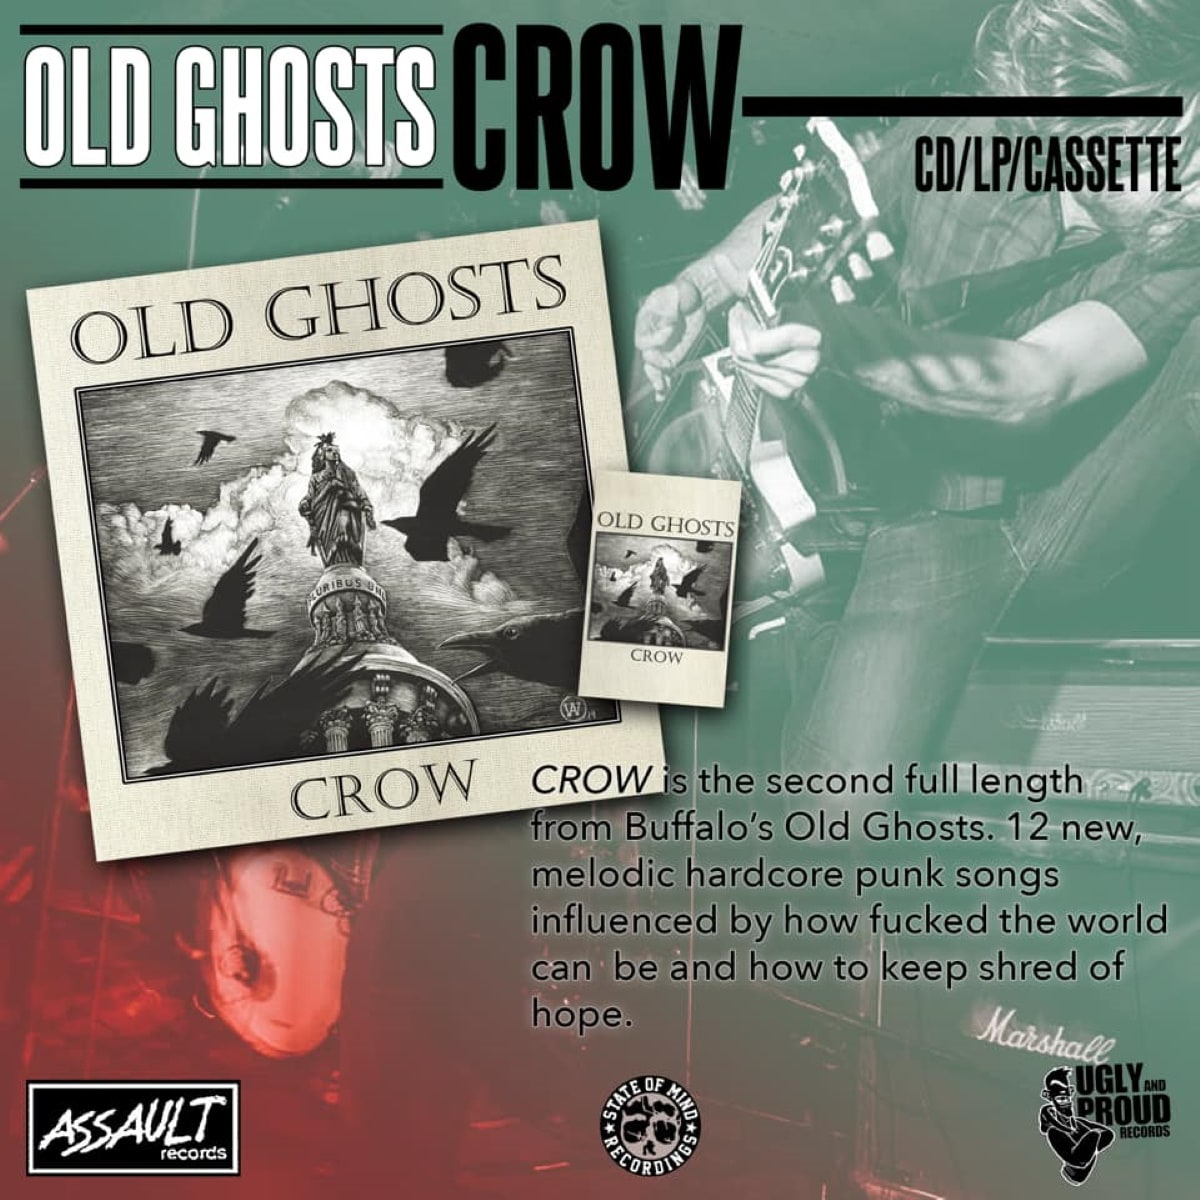 OLD GHOSTS promo